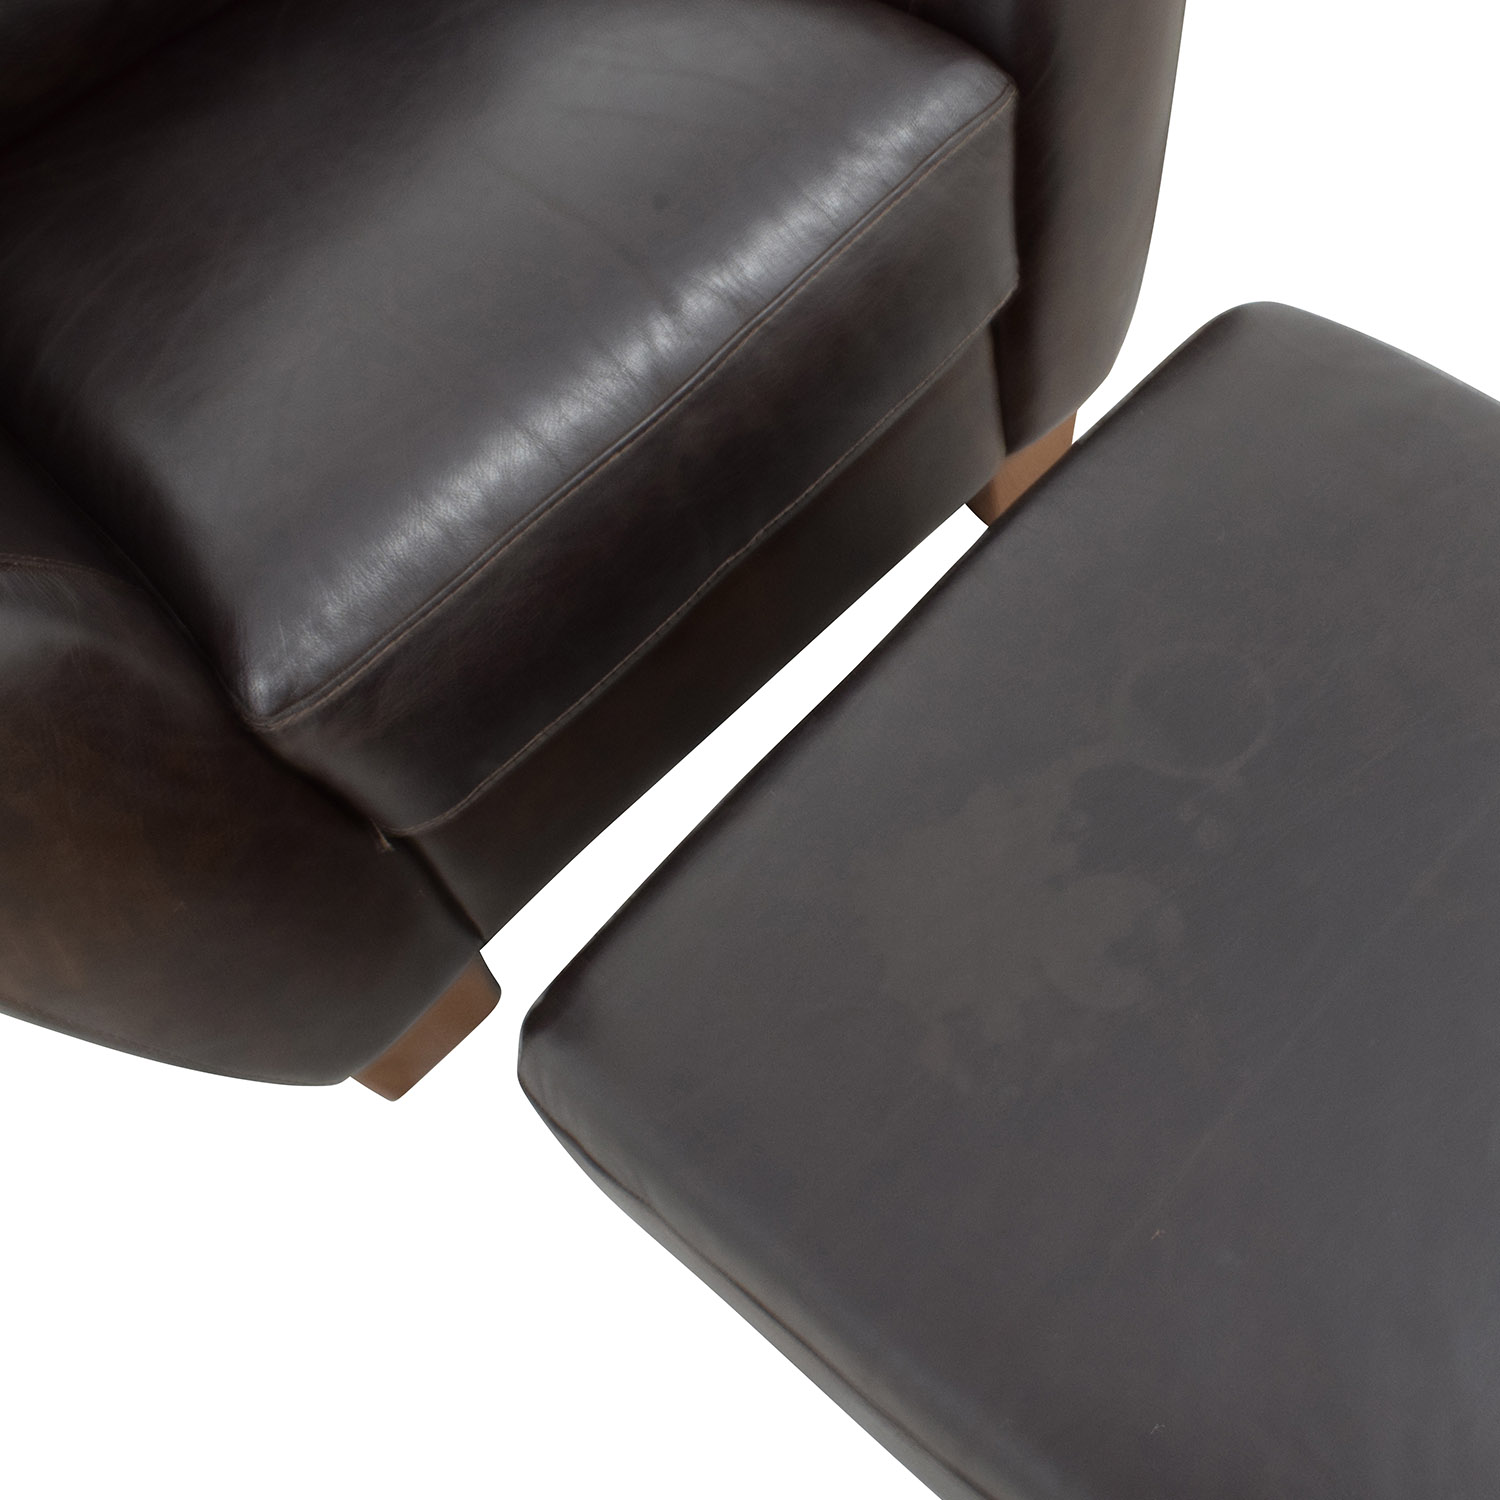 sofitalia leather sofa narrow table with outlet 64 off dark brown armchair